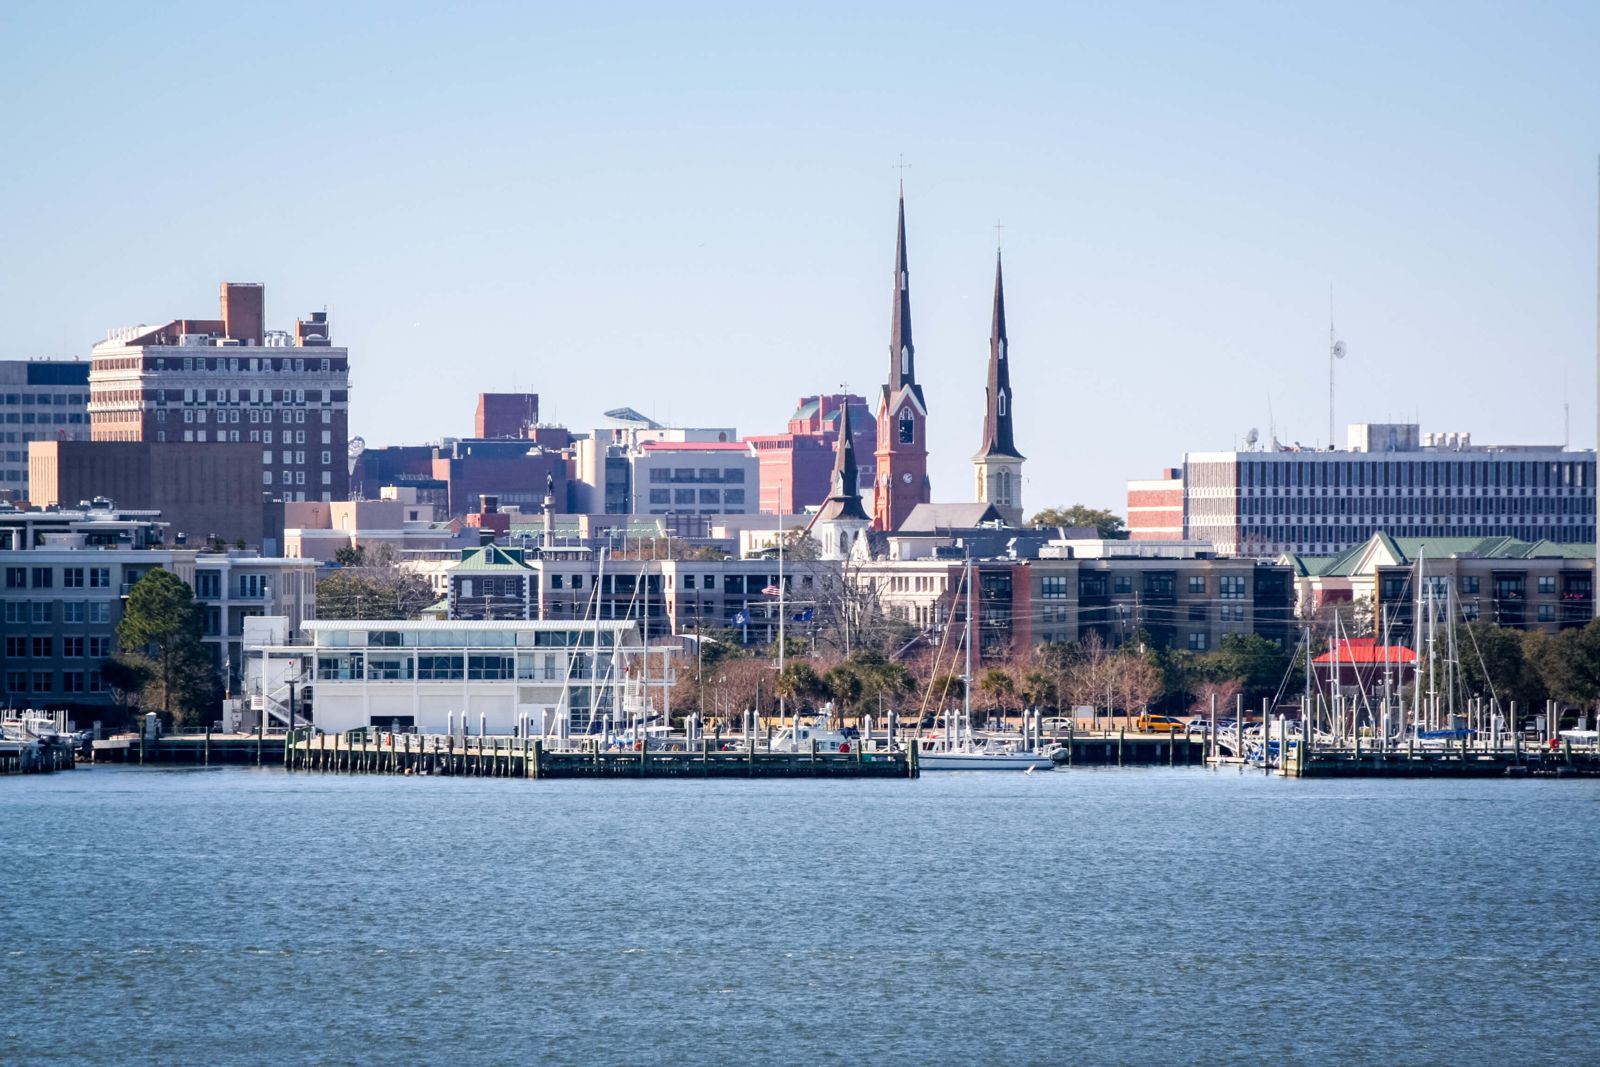 Charleston, South Carolina Personal Injury Law Firm The Derrick Law Firm